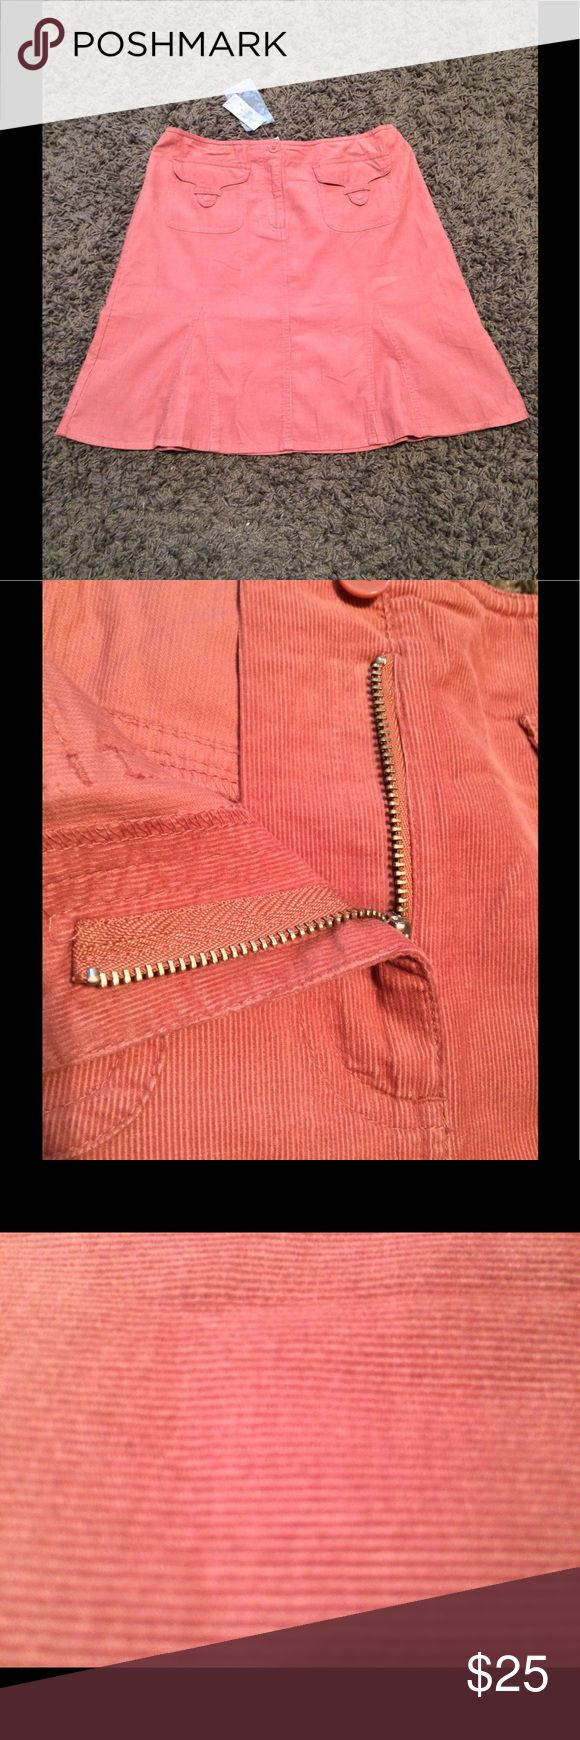 """NEW Ann Taylor Loft Skirt Size 6 New with tags and pink in color. The material appears to be corduroy """"like"""". Measures 19"""" from top to bottom.. Ann Taylor Skirts Asymmetrical"""